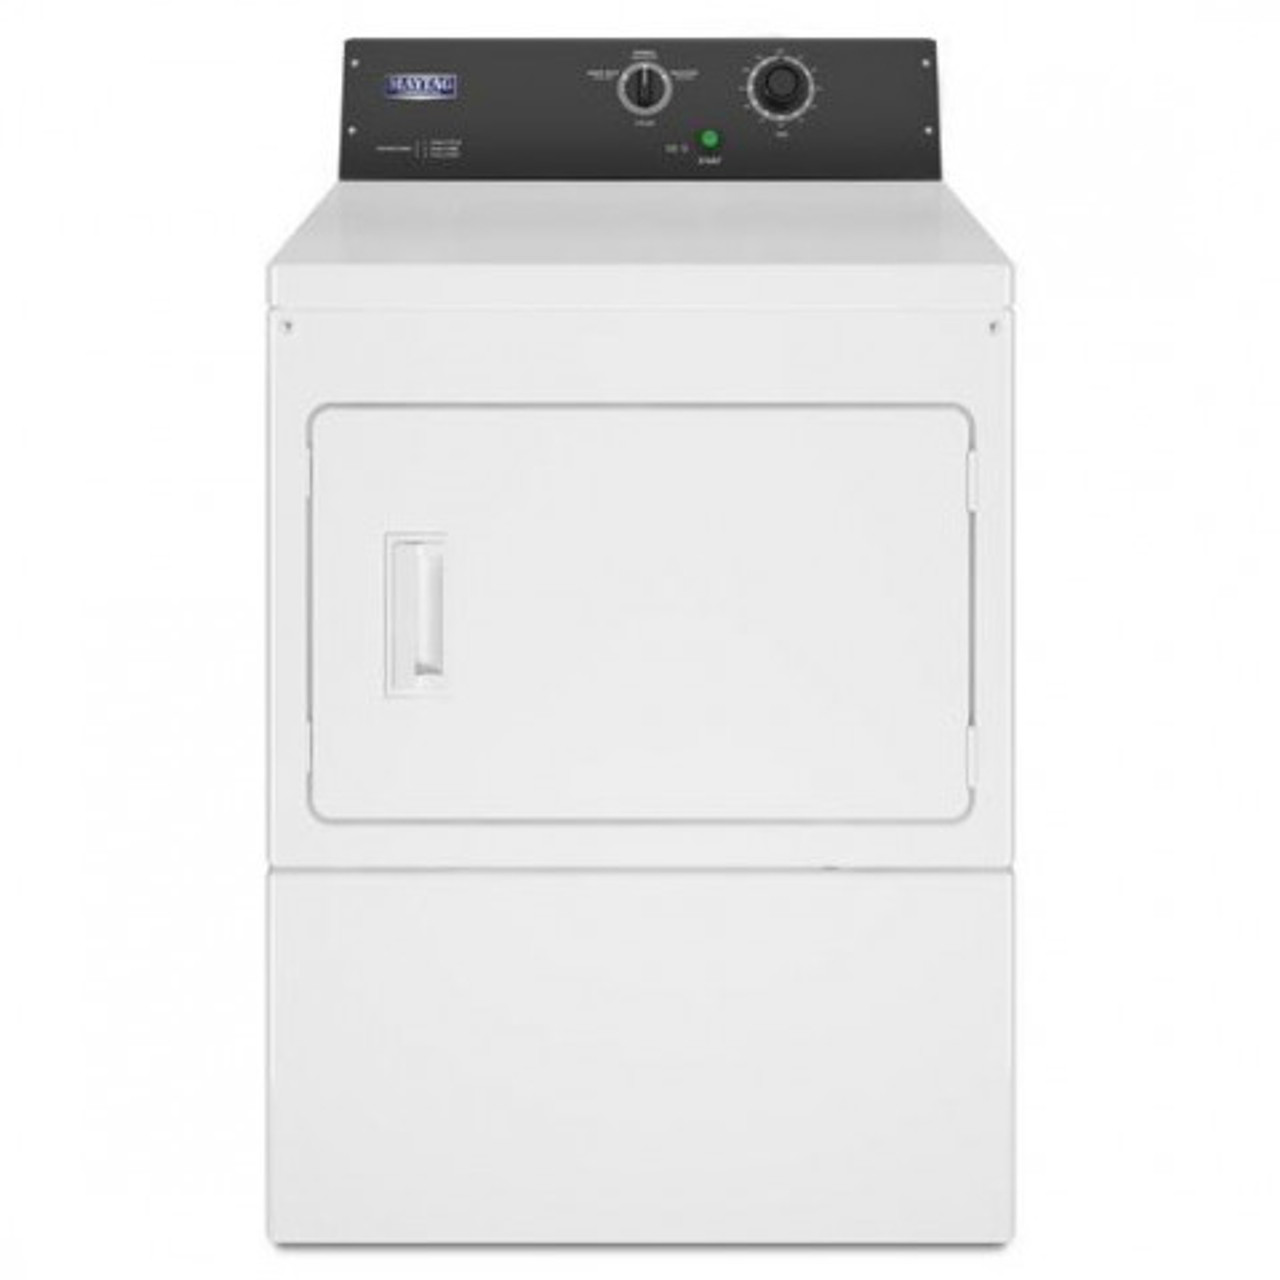 Maytag MDG20MN - Maytag Commercial Single-Load Gas Dryer - Non Coin